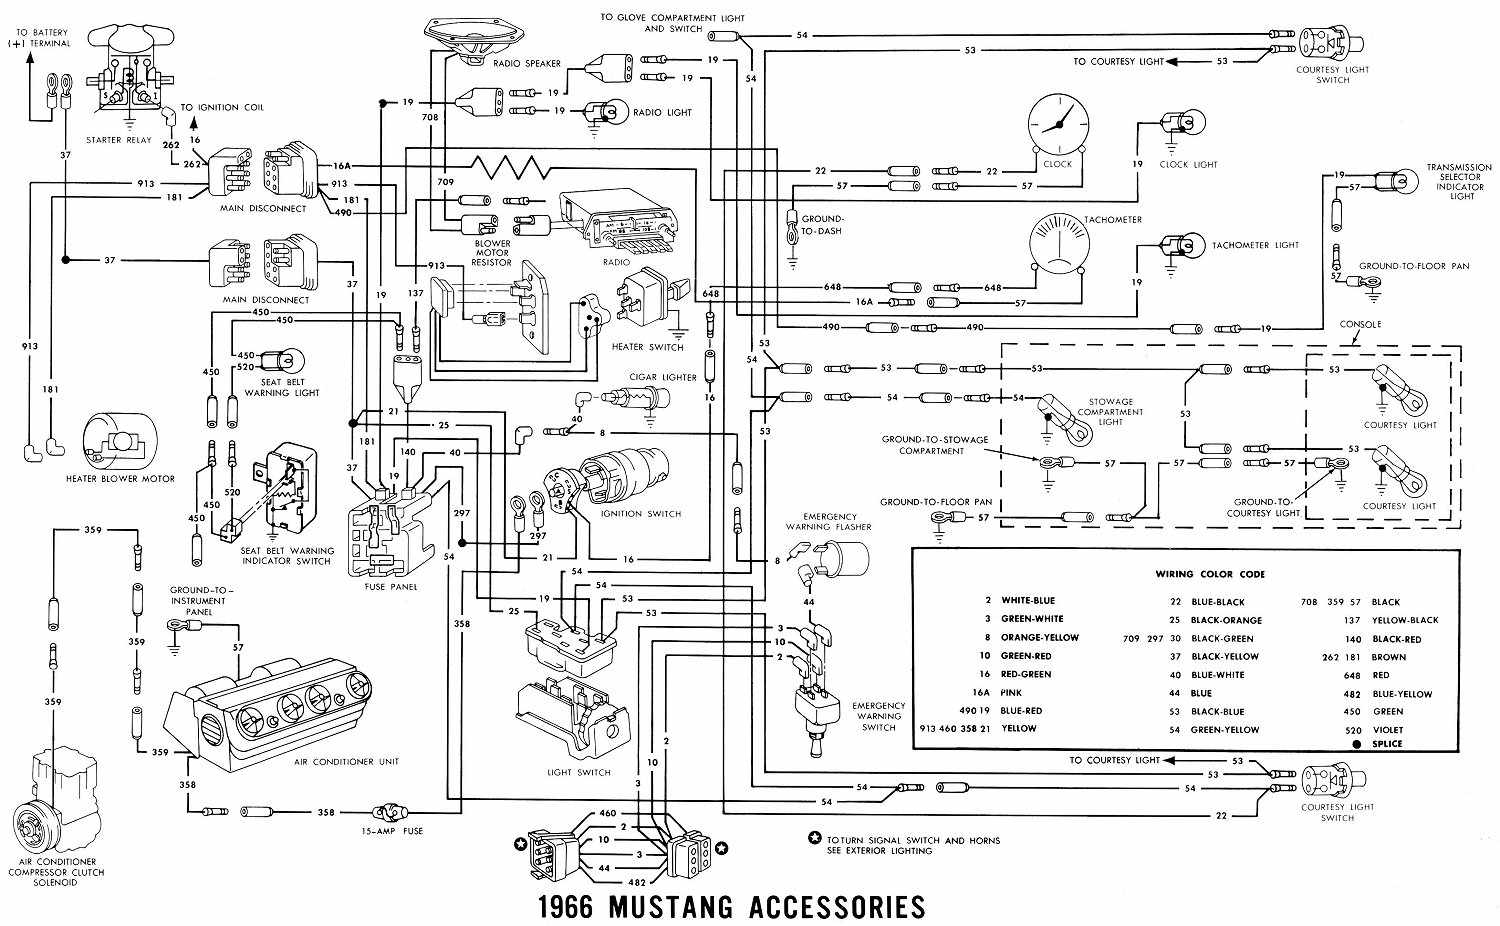 super nintendo controller wiring diagram best wiring library Audiovox Wiring Diagram wiring diagrams 911 1966 mustang complete accessories wiring diagram pac wiring diagram 80 1966 mustang